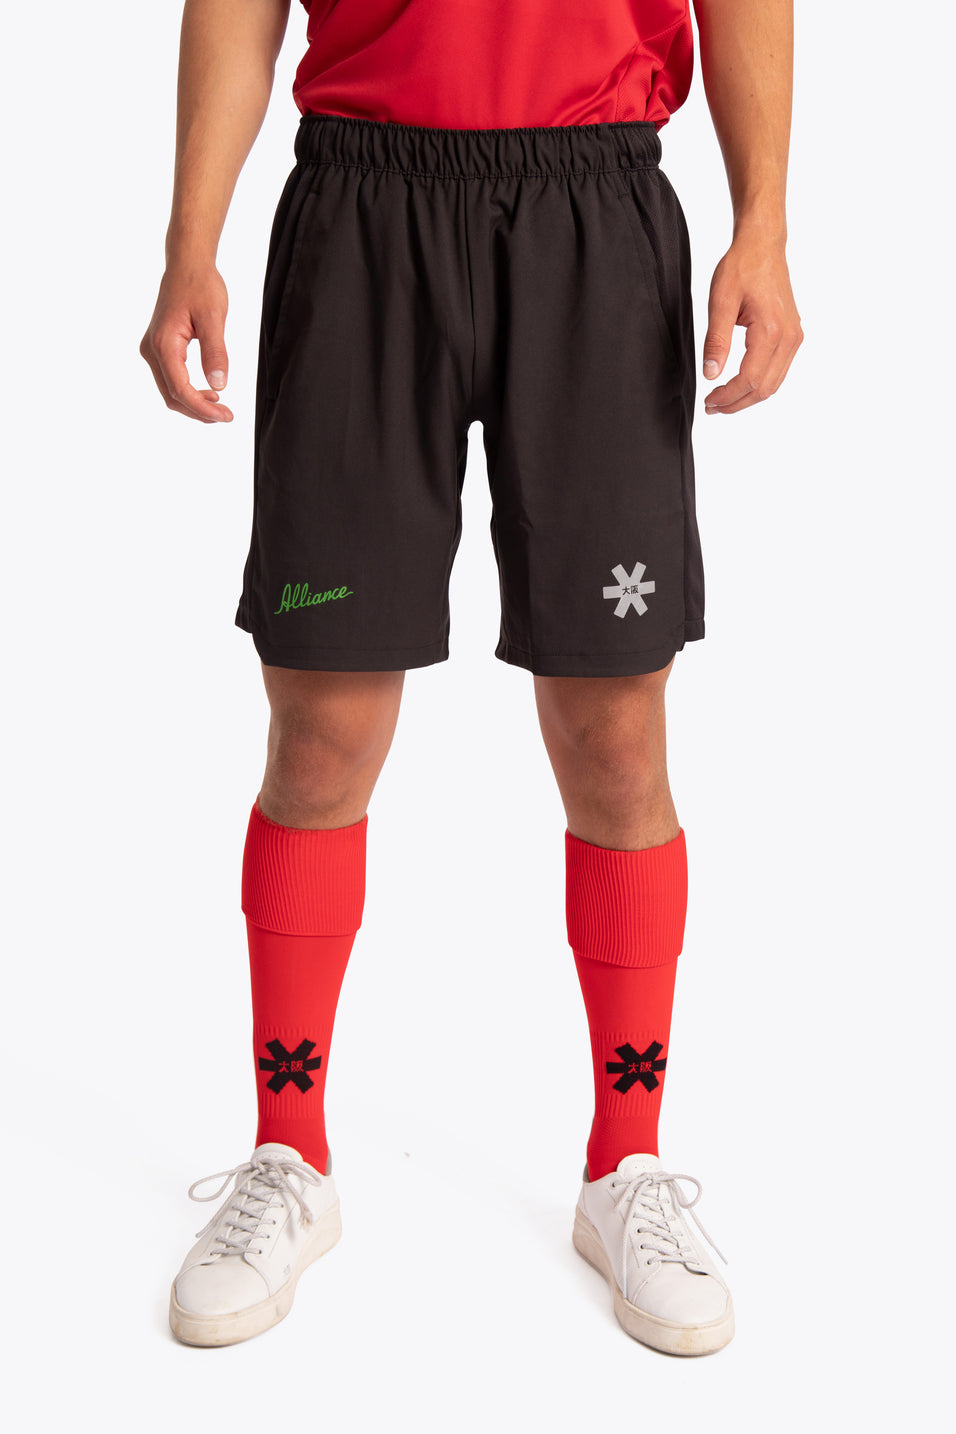 Alliance Men Short - Black